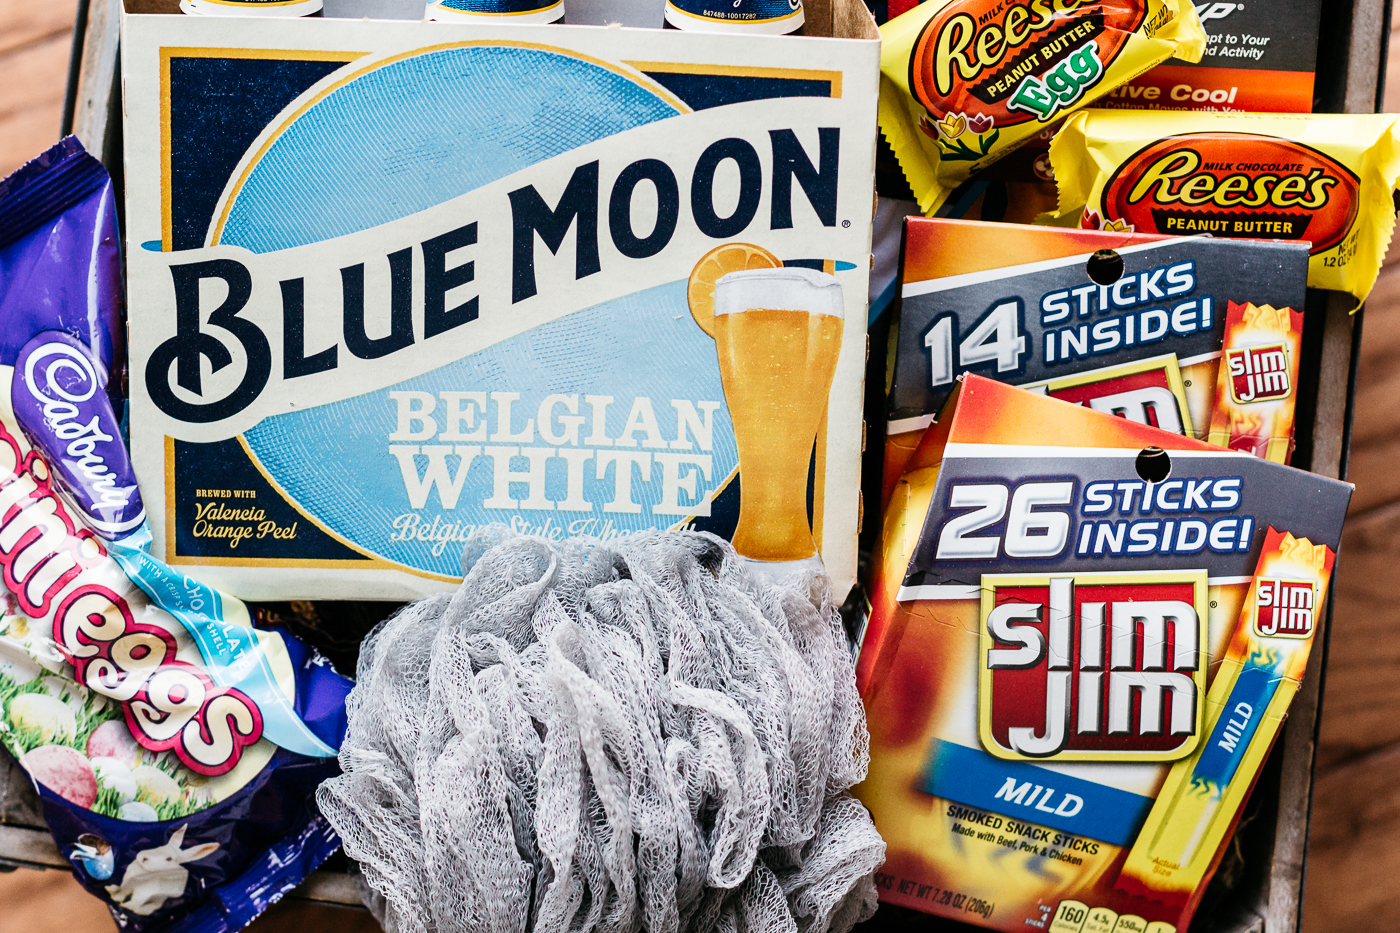 bold easter basket ideas, easter basket ideas for men, slim jim bold easter baskets, mens lifestyle blog, the kentucky gent